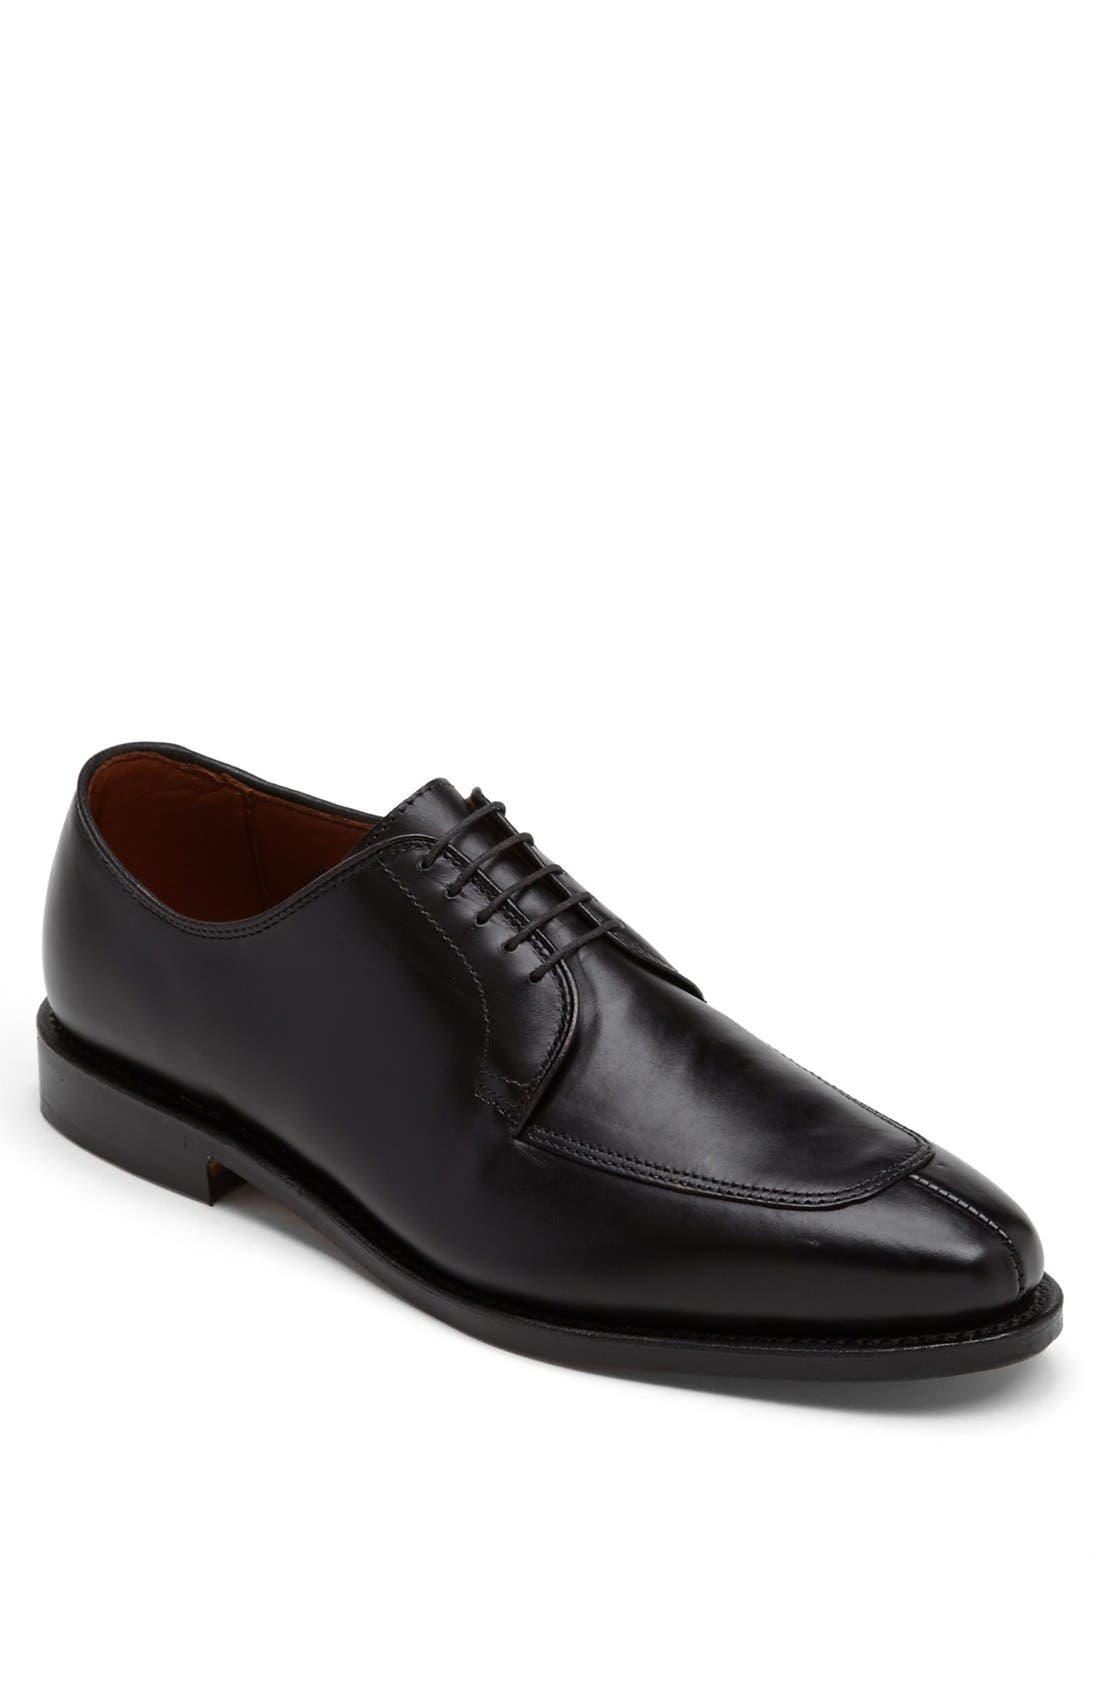 ALLEN EDMONDS Delray Split Toe Derby, Main, color, BLACK